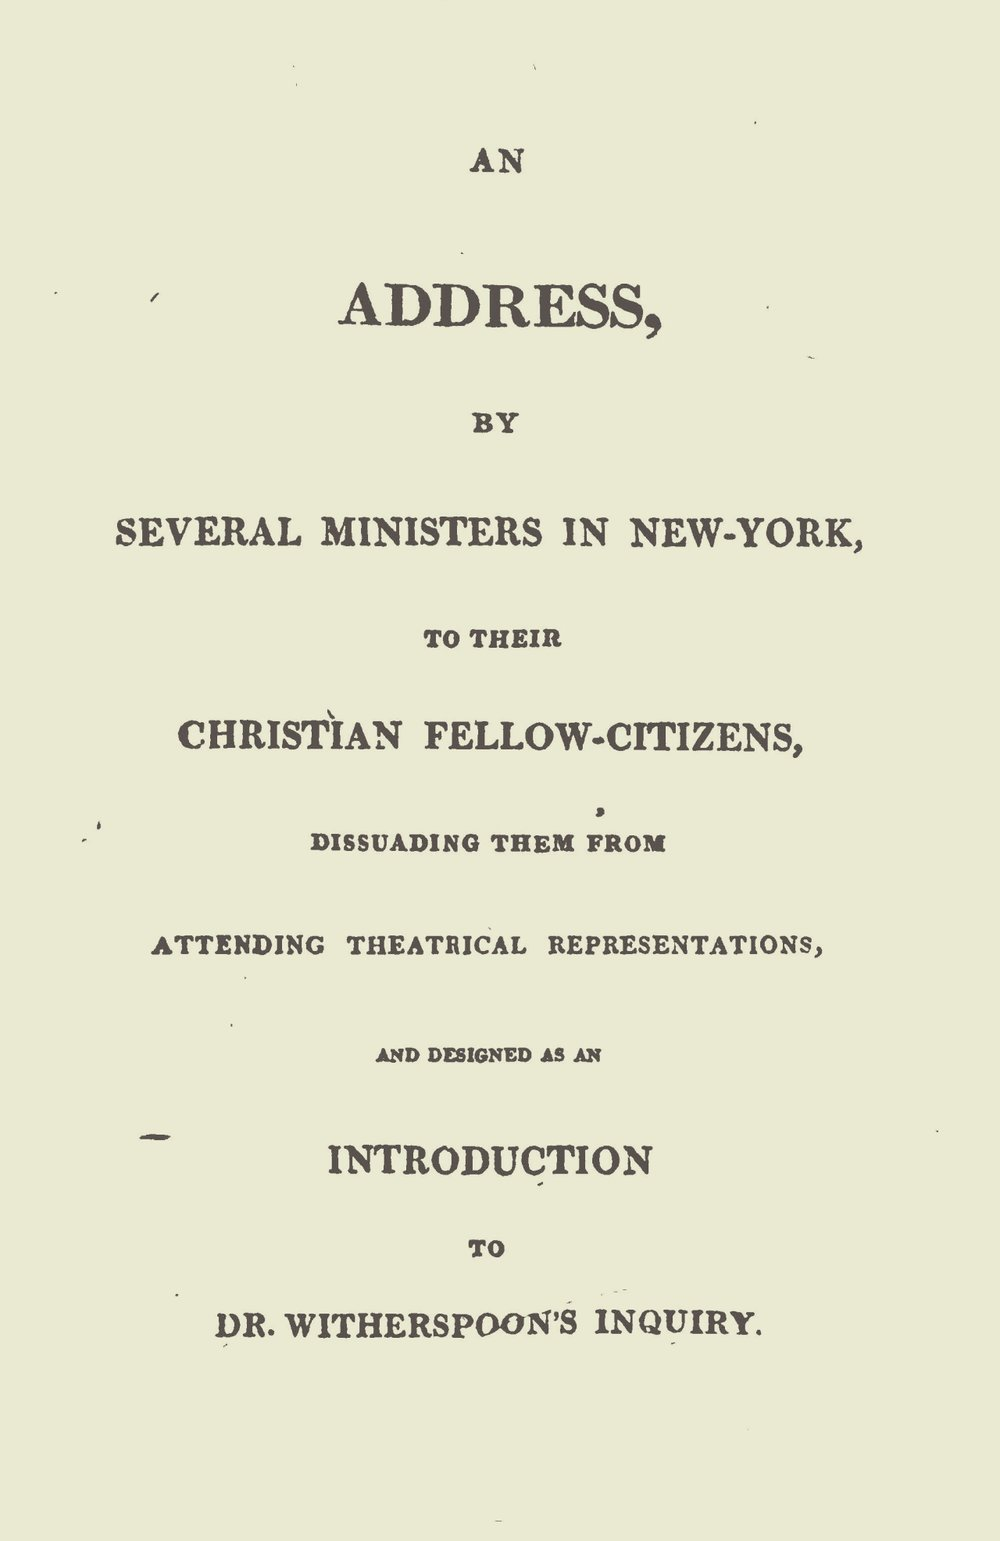 Spring, Gardiner, An Address on Theatrical Representations Title Page.jpg